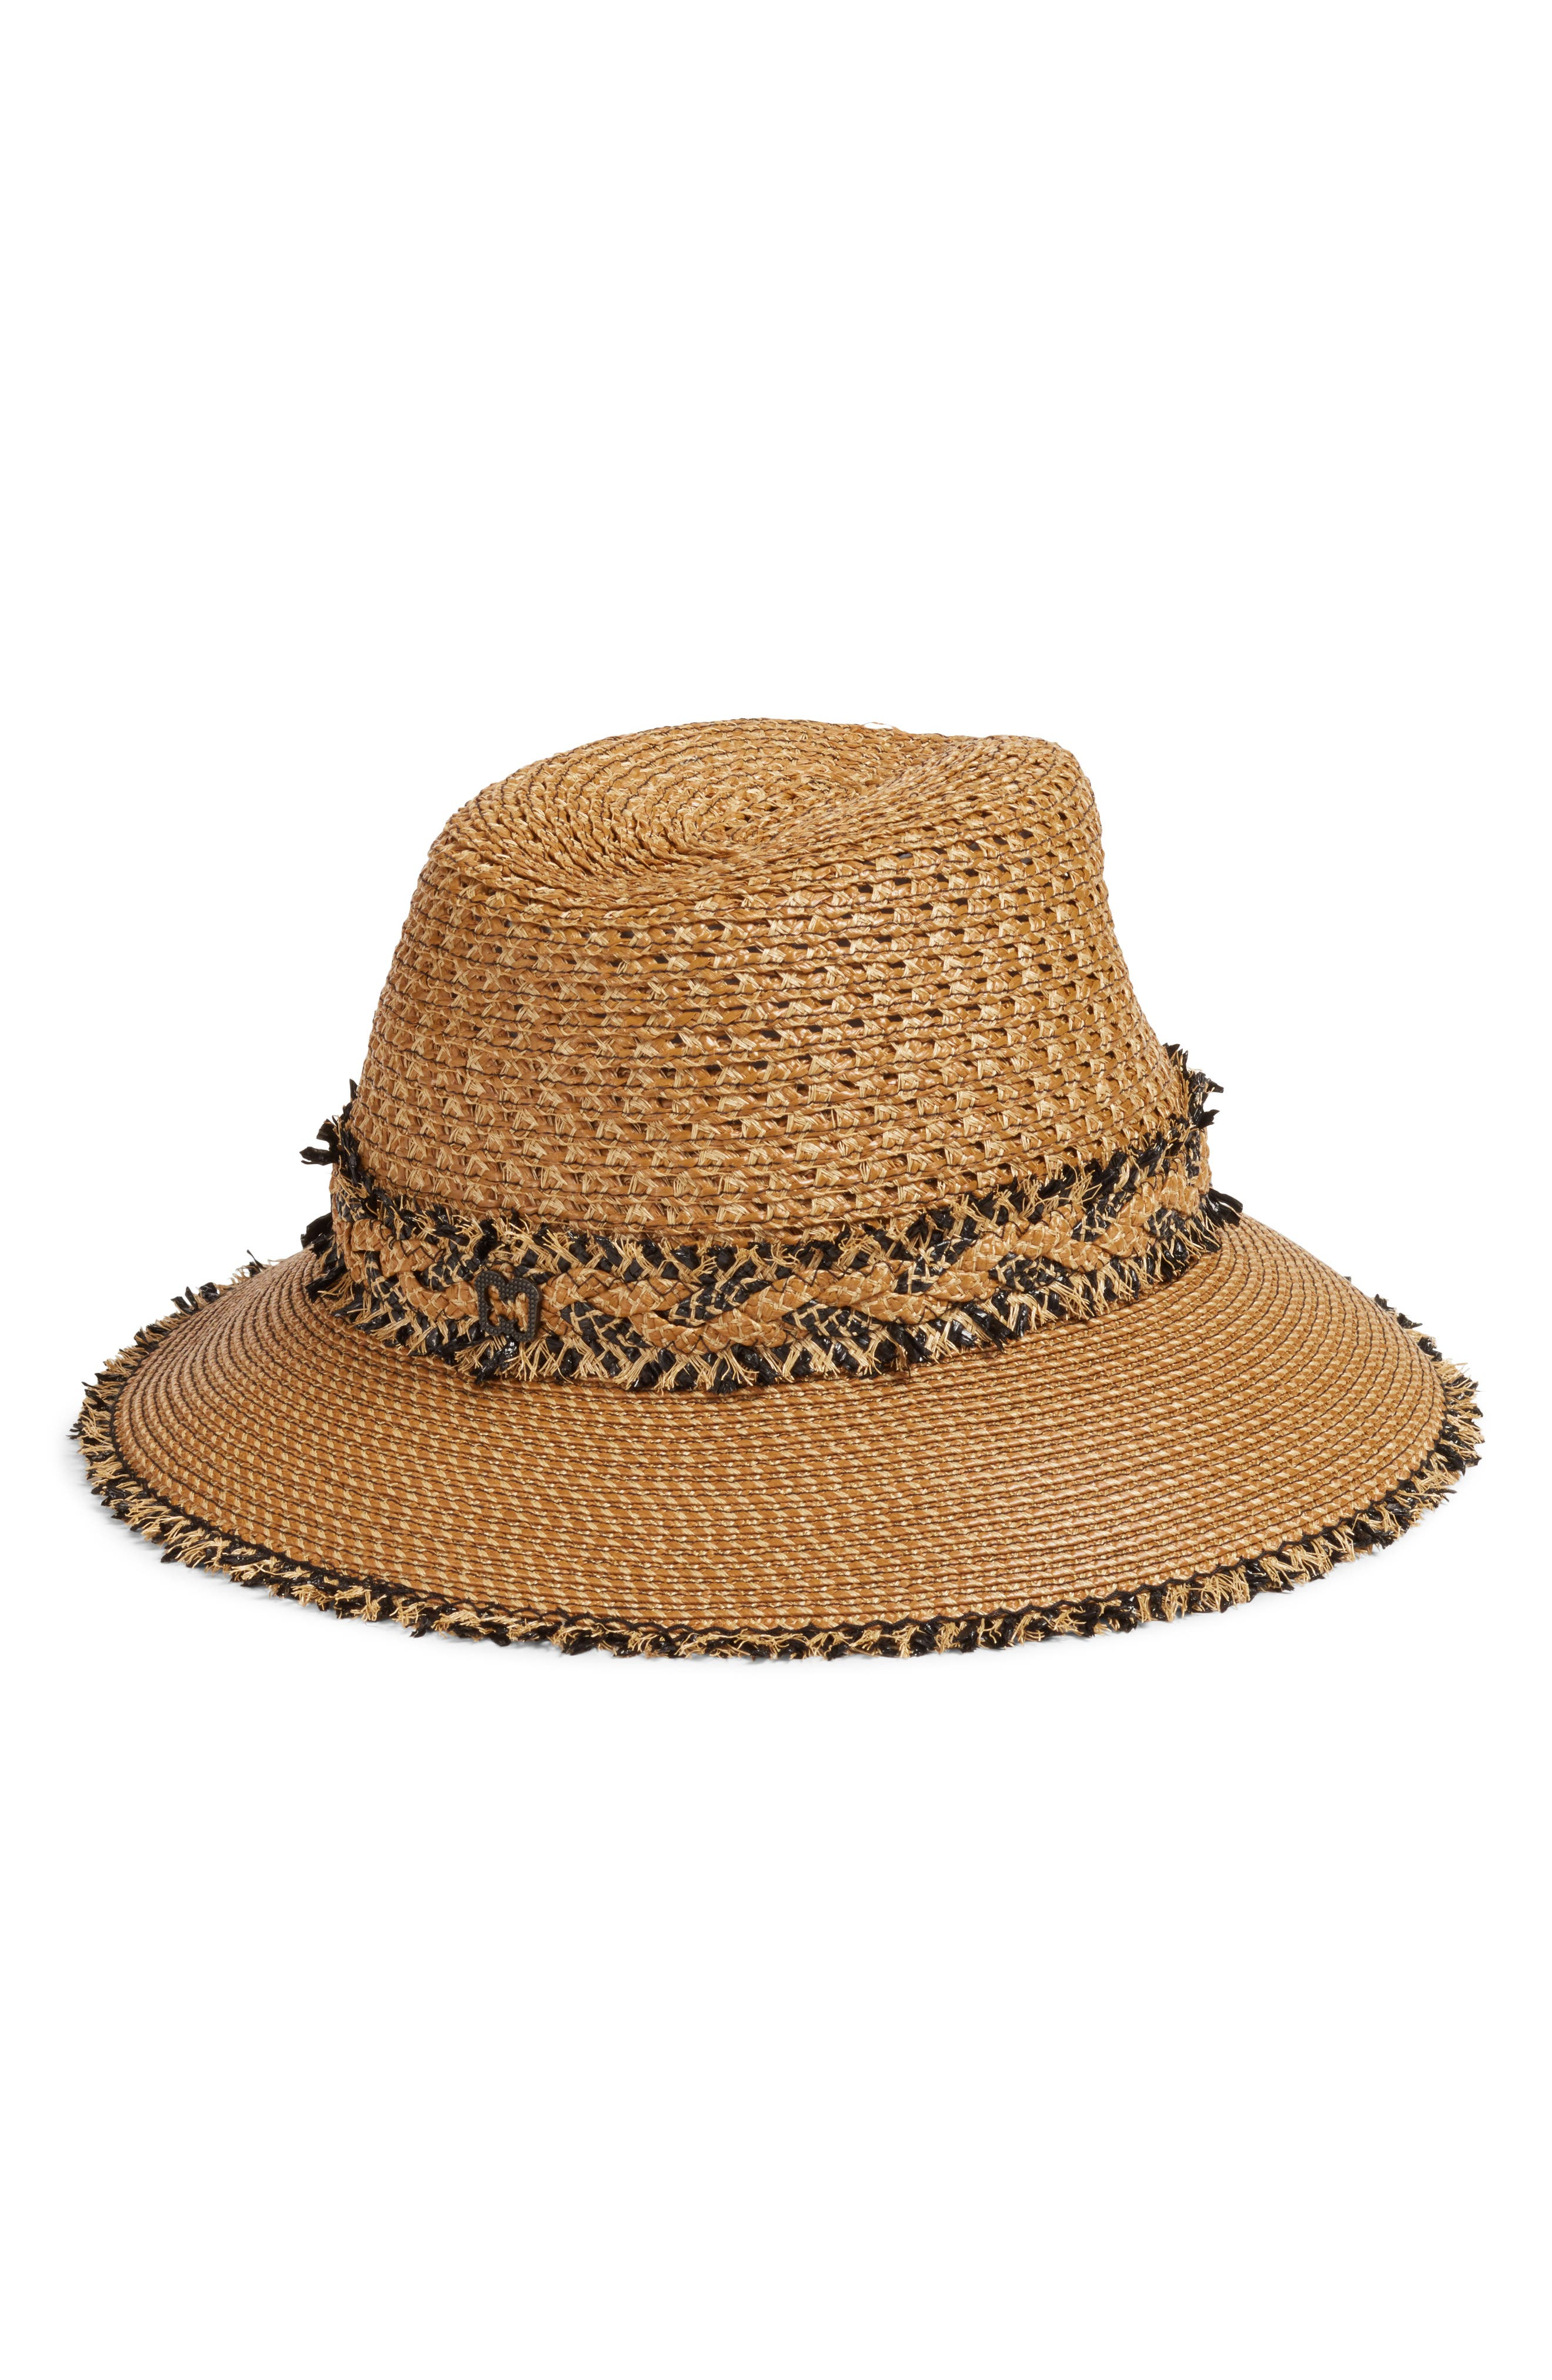 Lulu Squishee<sup>®</sup> Straw Hat,                             Alternate thumbnail 2, color,                             Natural/ Black Mix